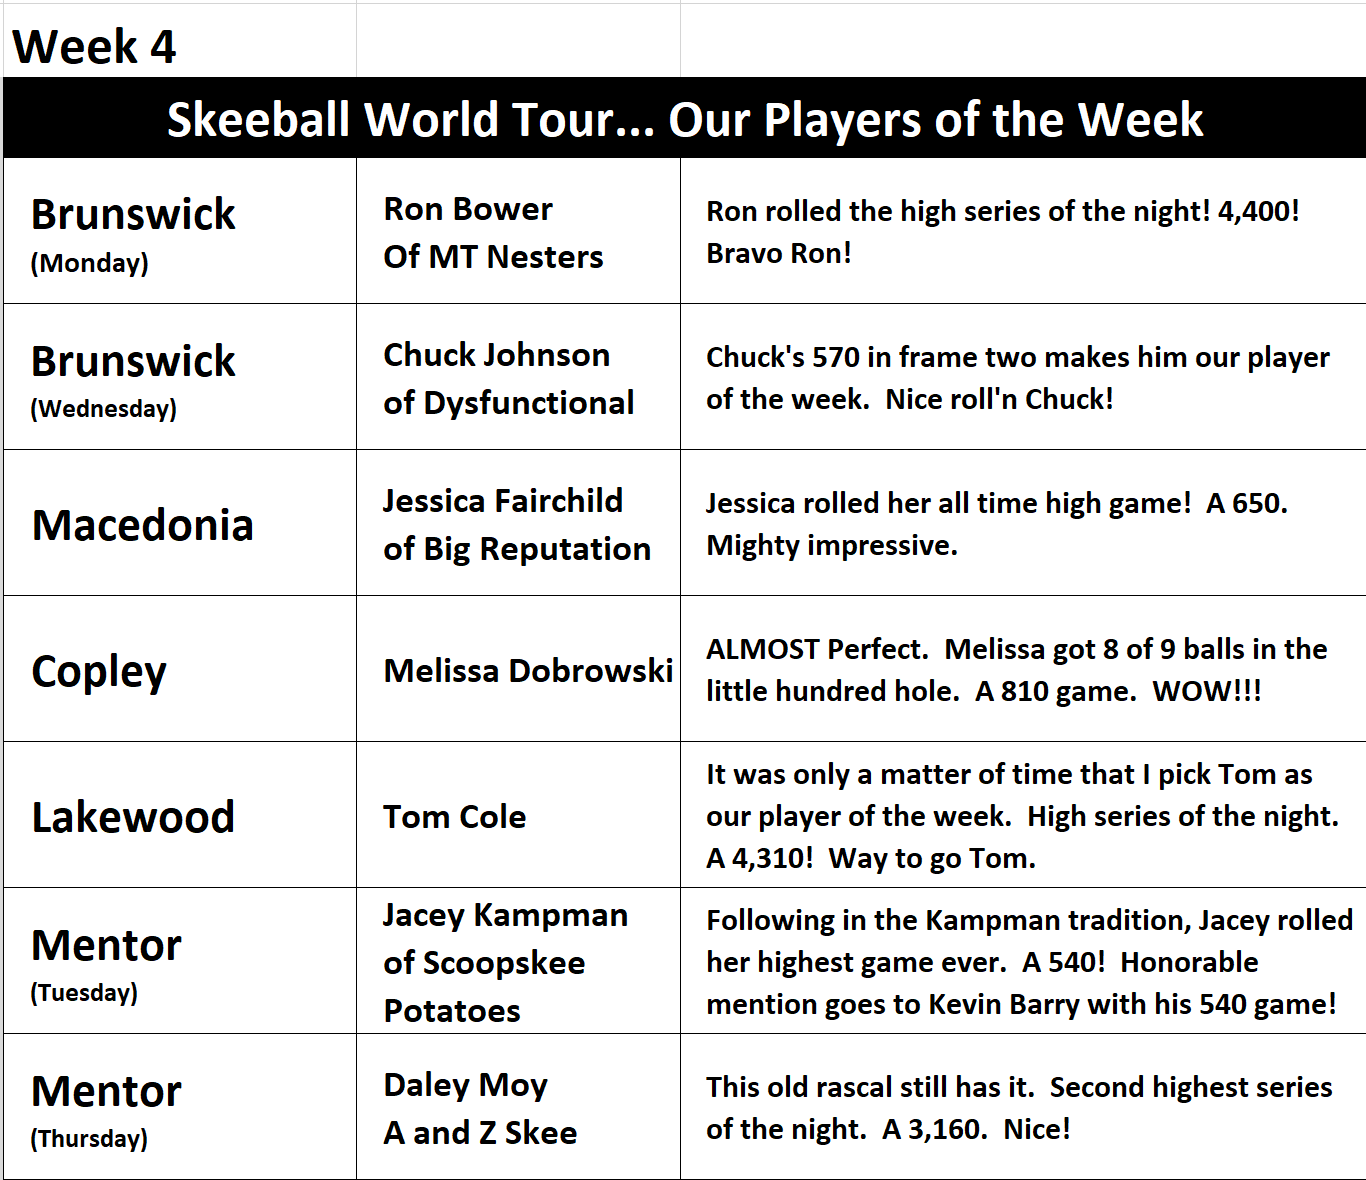 Week 4 Players of the Week